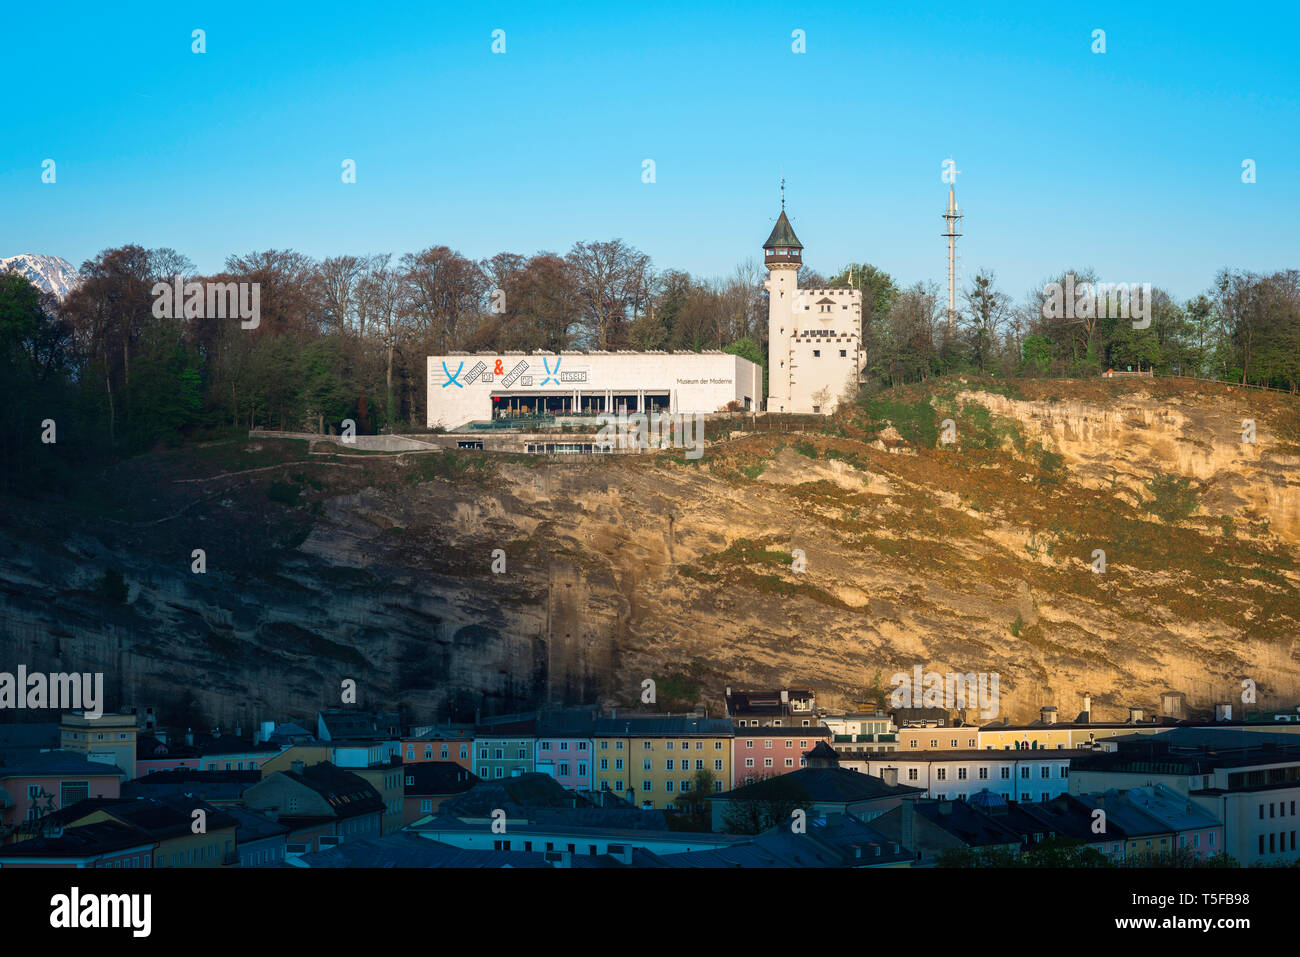 Museum Der Moderne Salzburg, view of the Museum Der Moderne sited on top of Monchsberg hill overlooking the city of Salzburg, Austria. Stock Photo